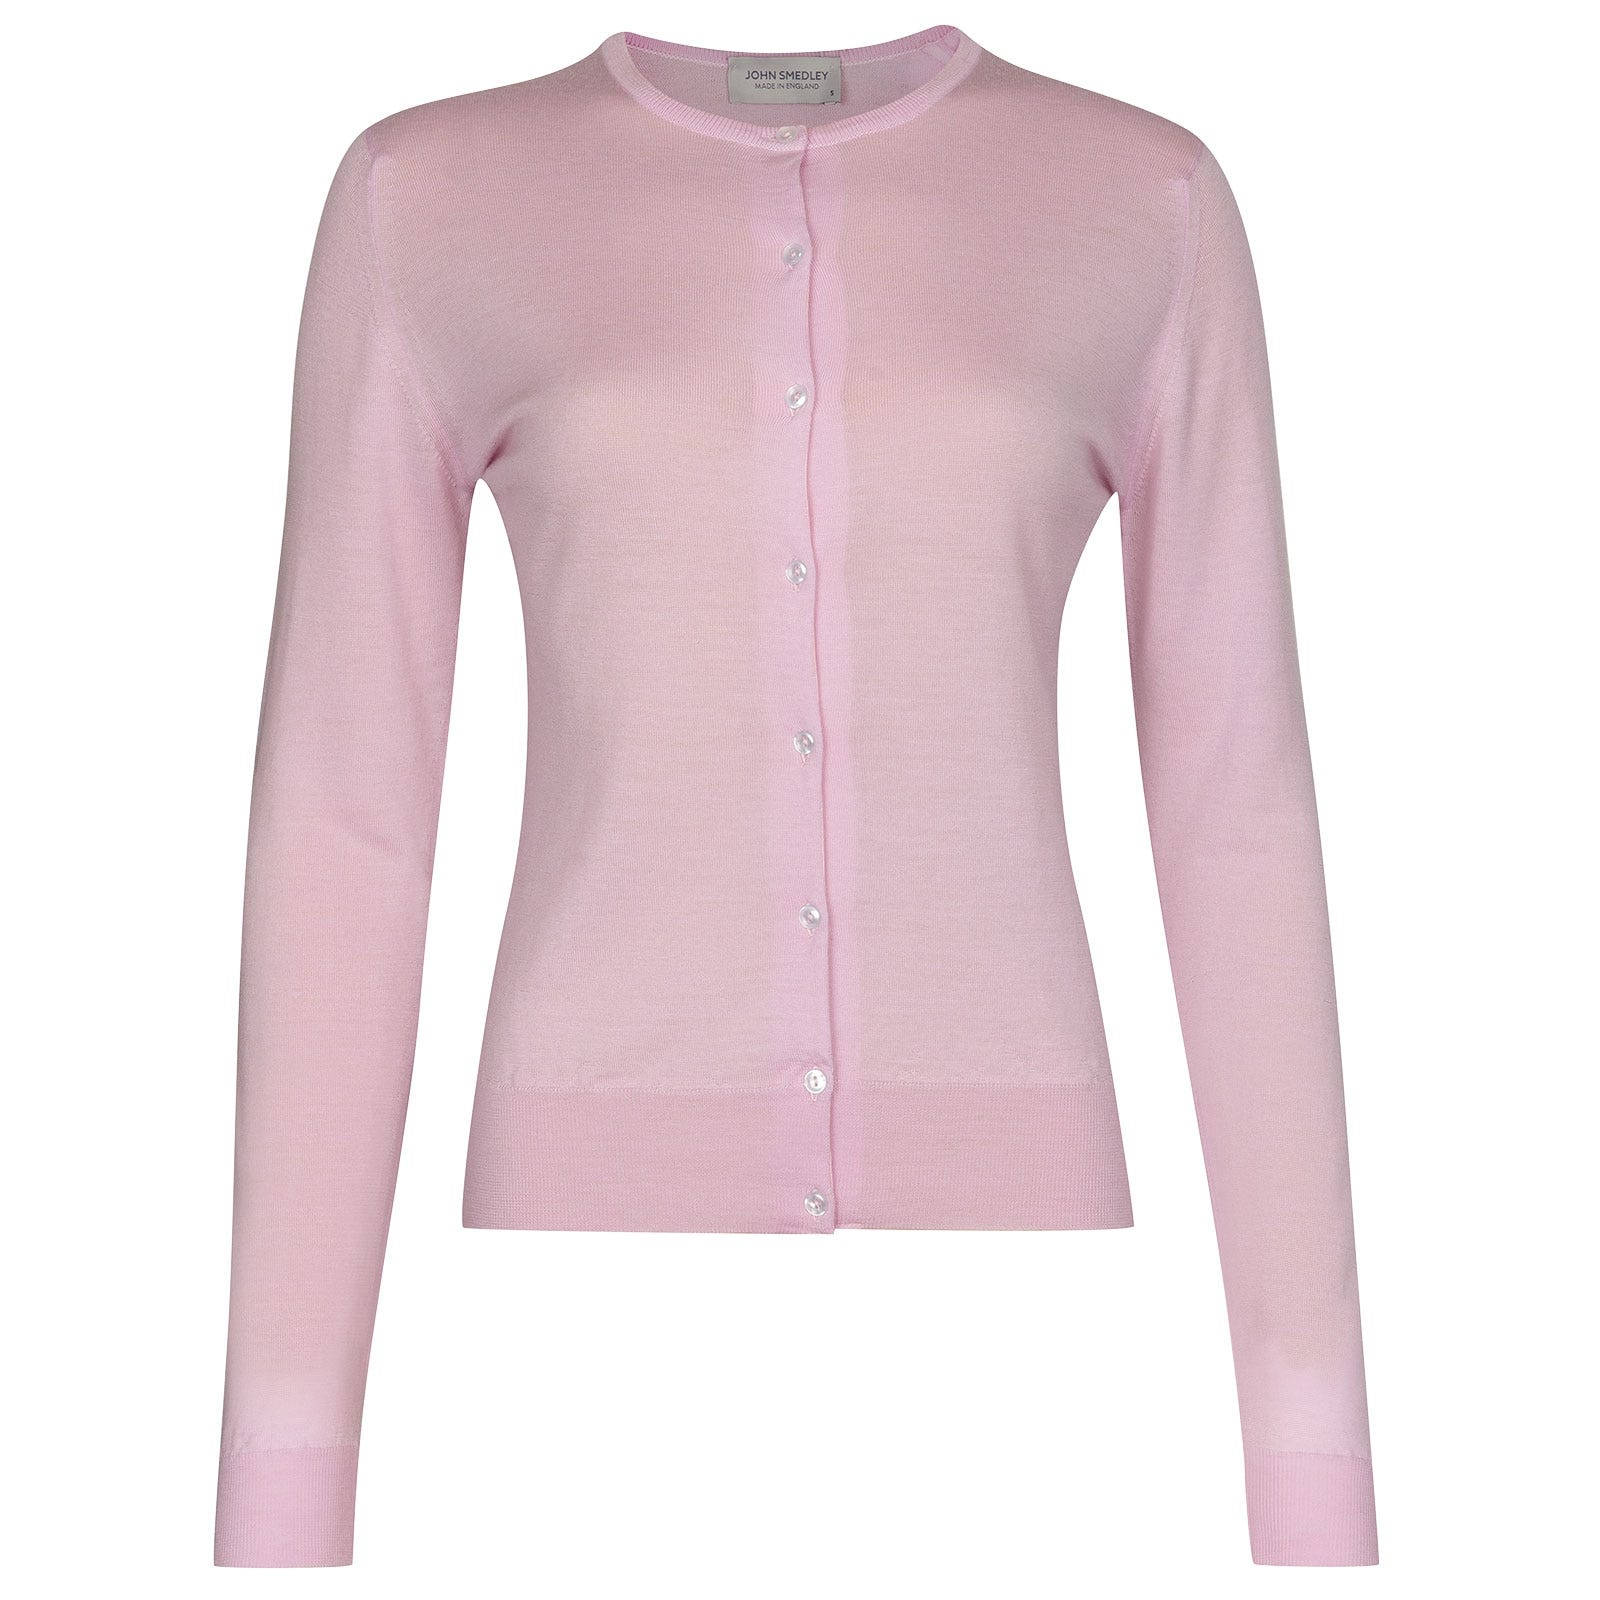 John Smedley Pansy in Pink Blossom Cardigan-LGE